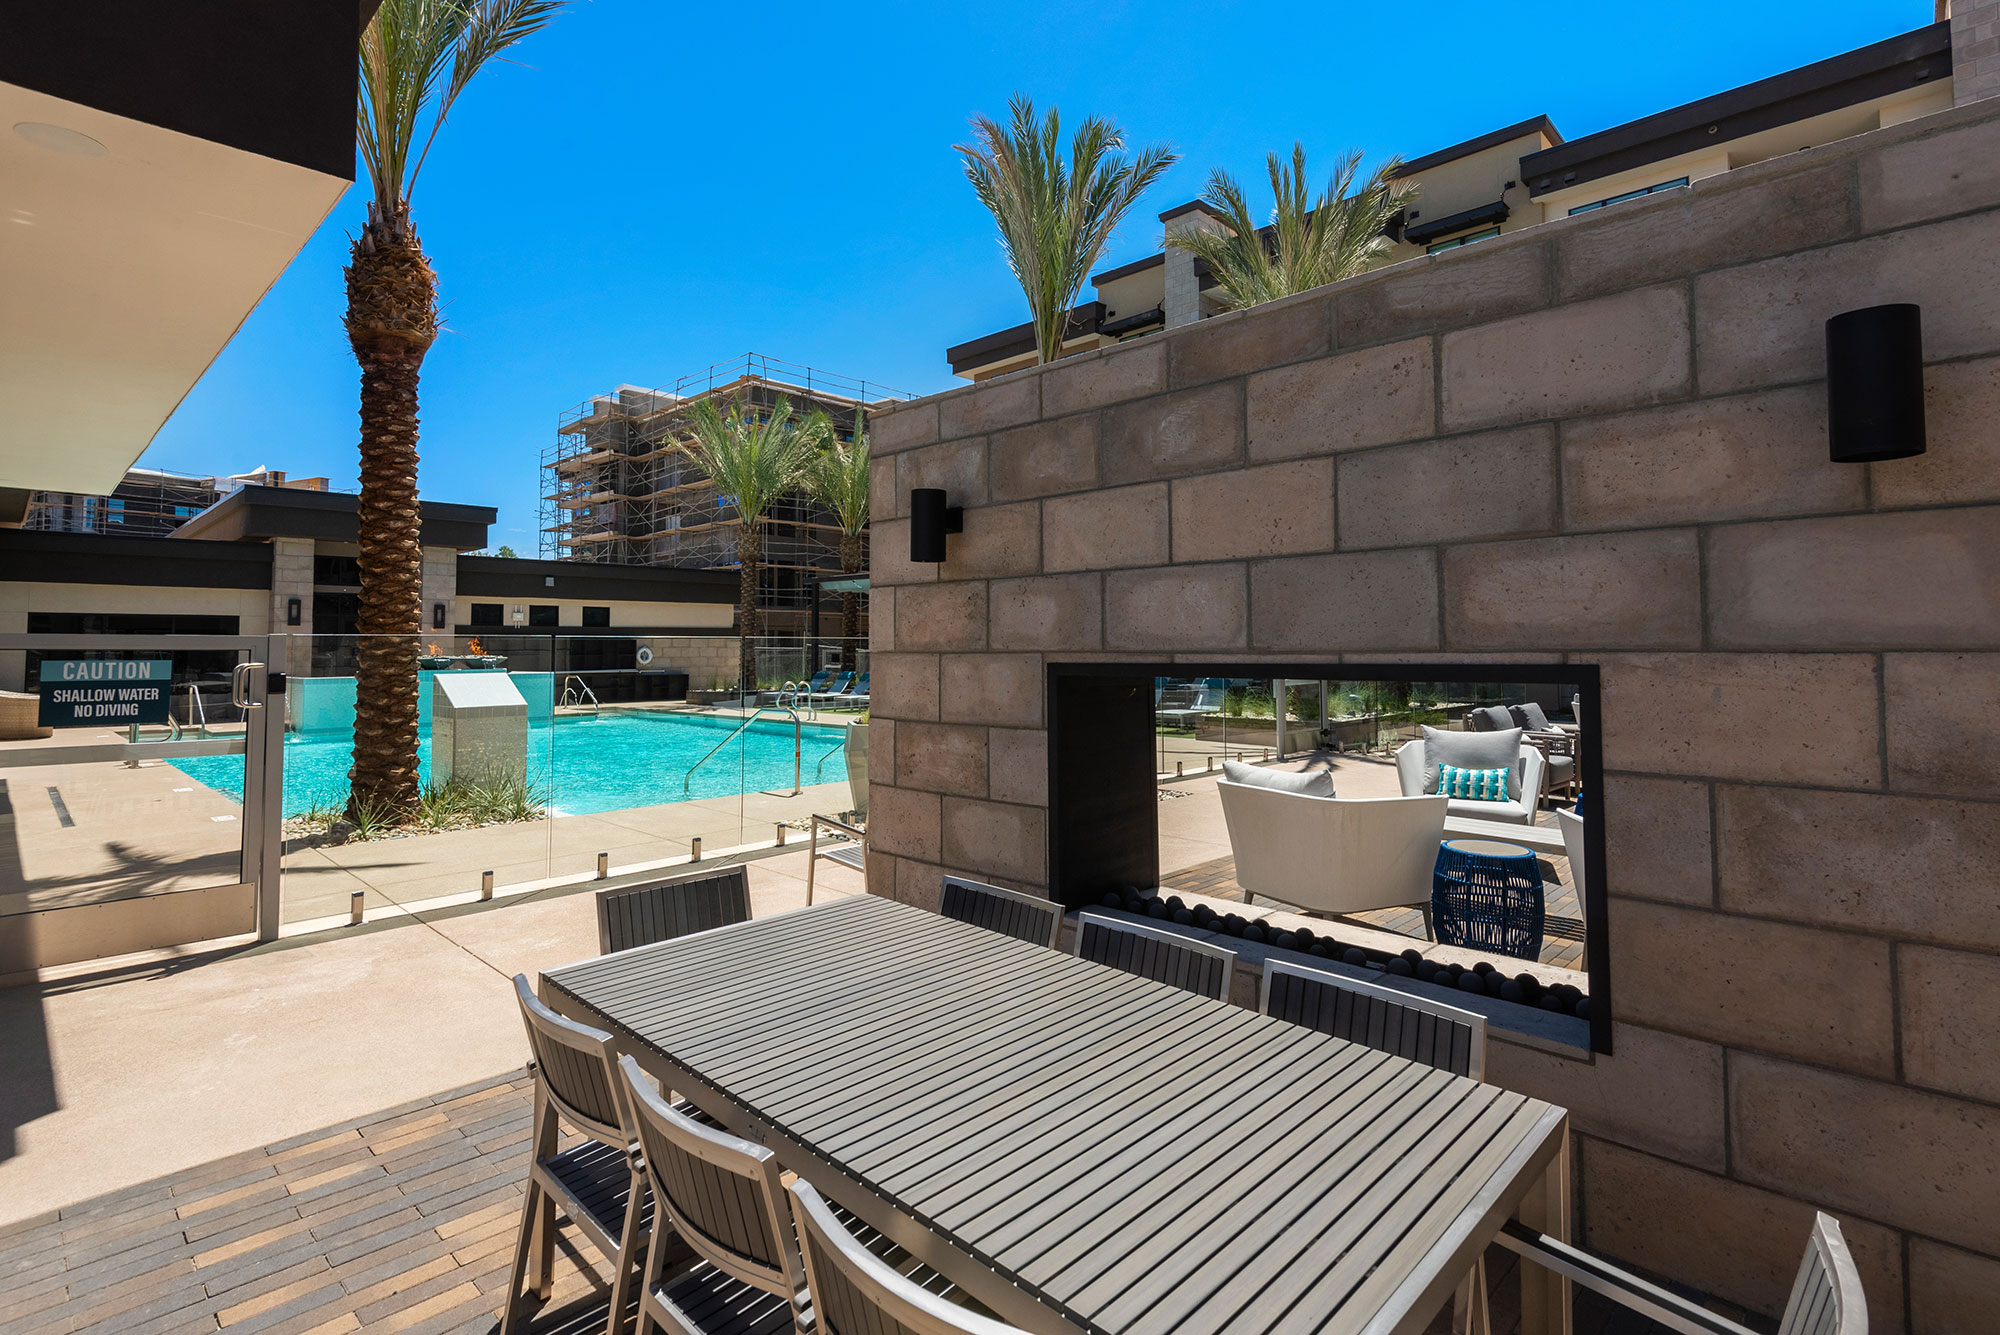 Riata - Poolside with outdoor fireplace